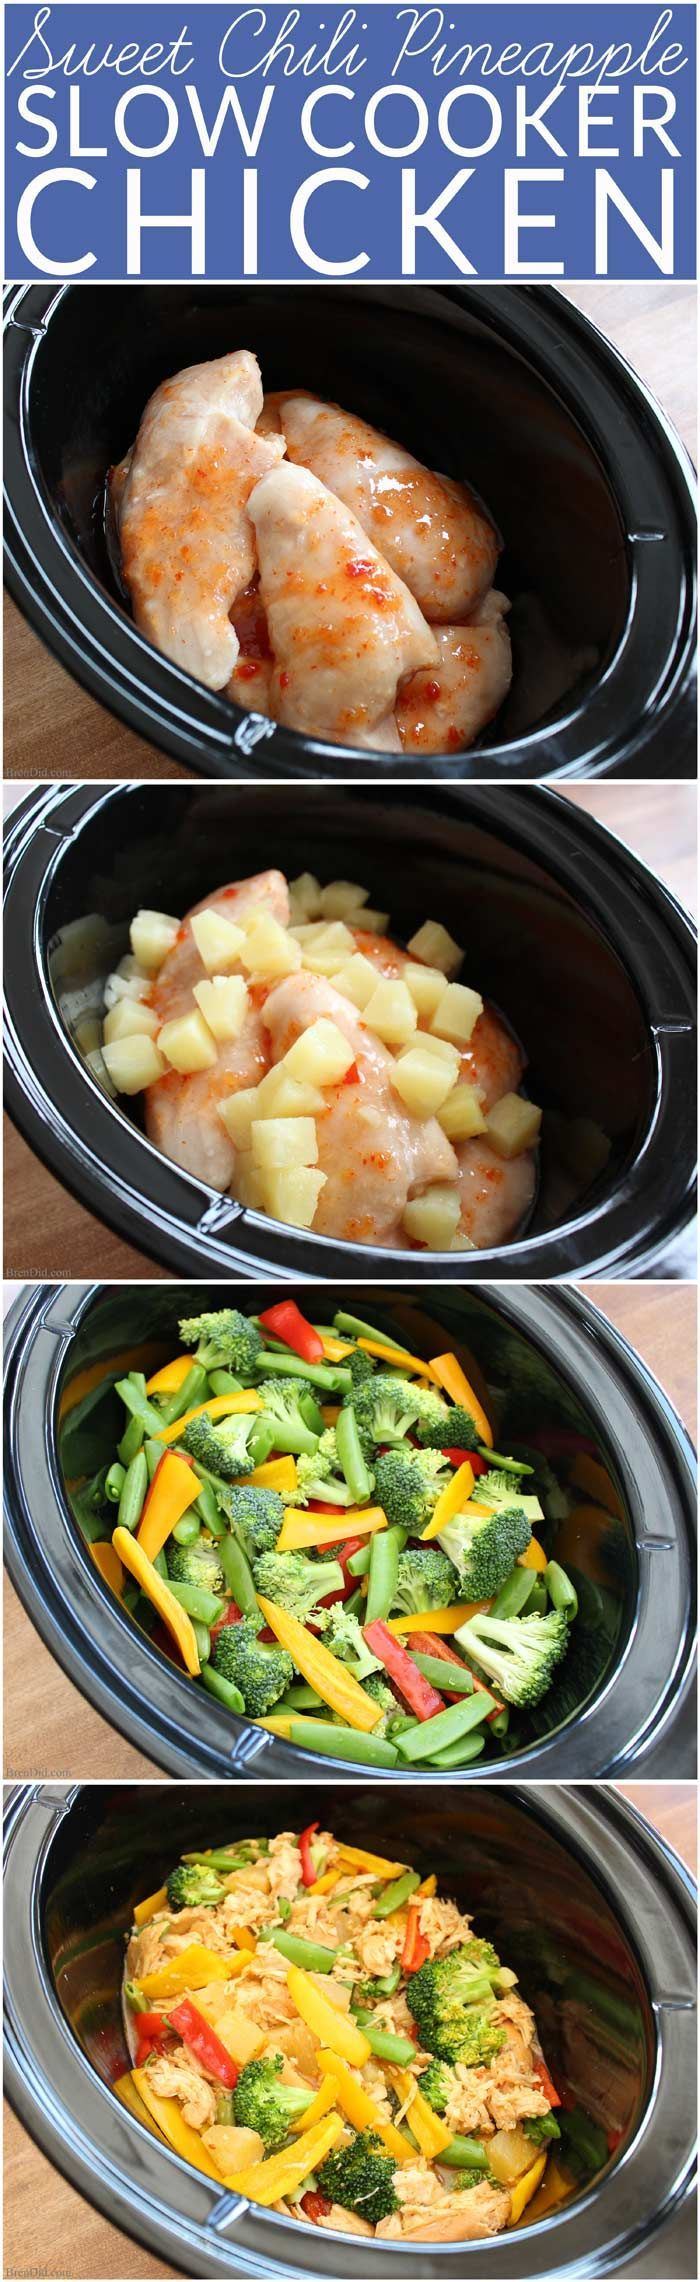 Easy crock pot recipe requires no thawing and uses just 4 somple ingredients: chicken, sweet chili sauce, pineapple and vegetables. In just 5 minutes you can prepare a delicious healthy slow cooker meal your whole family will love.